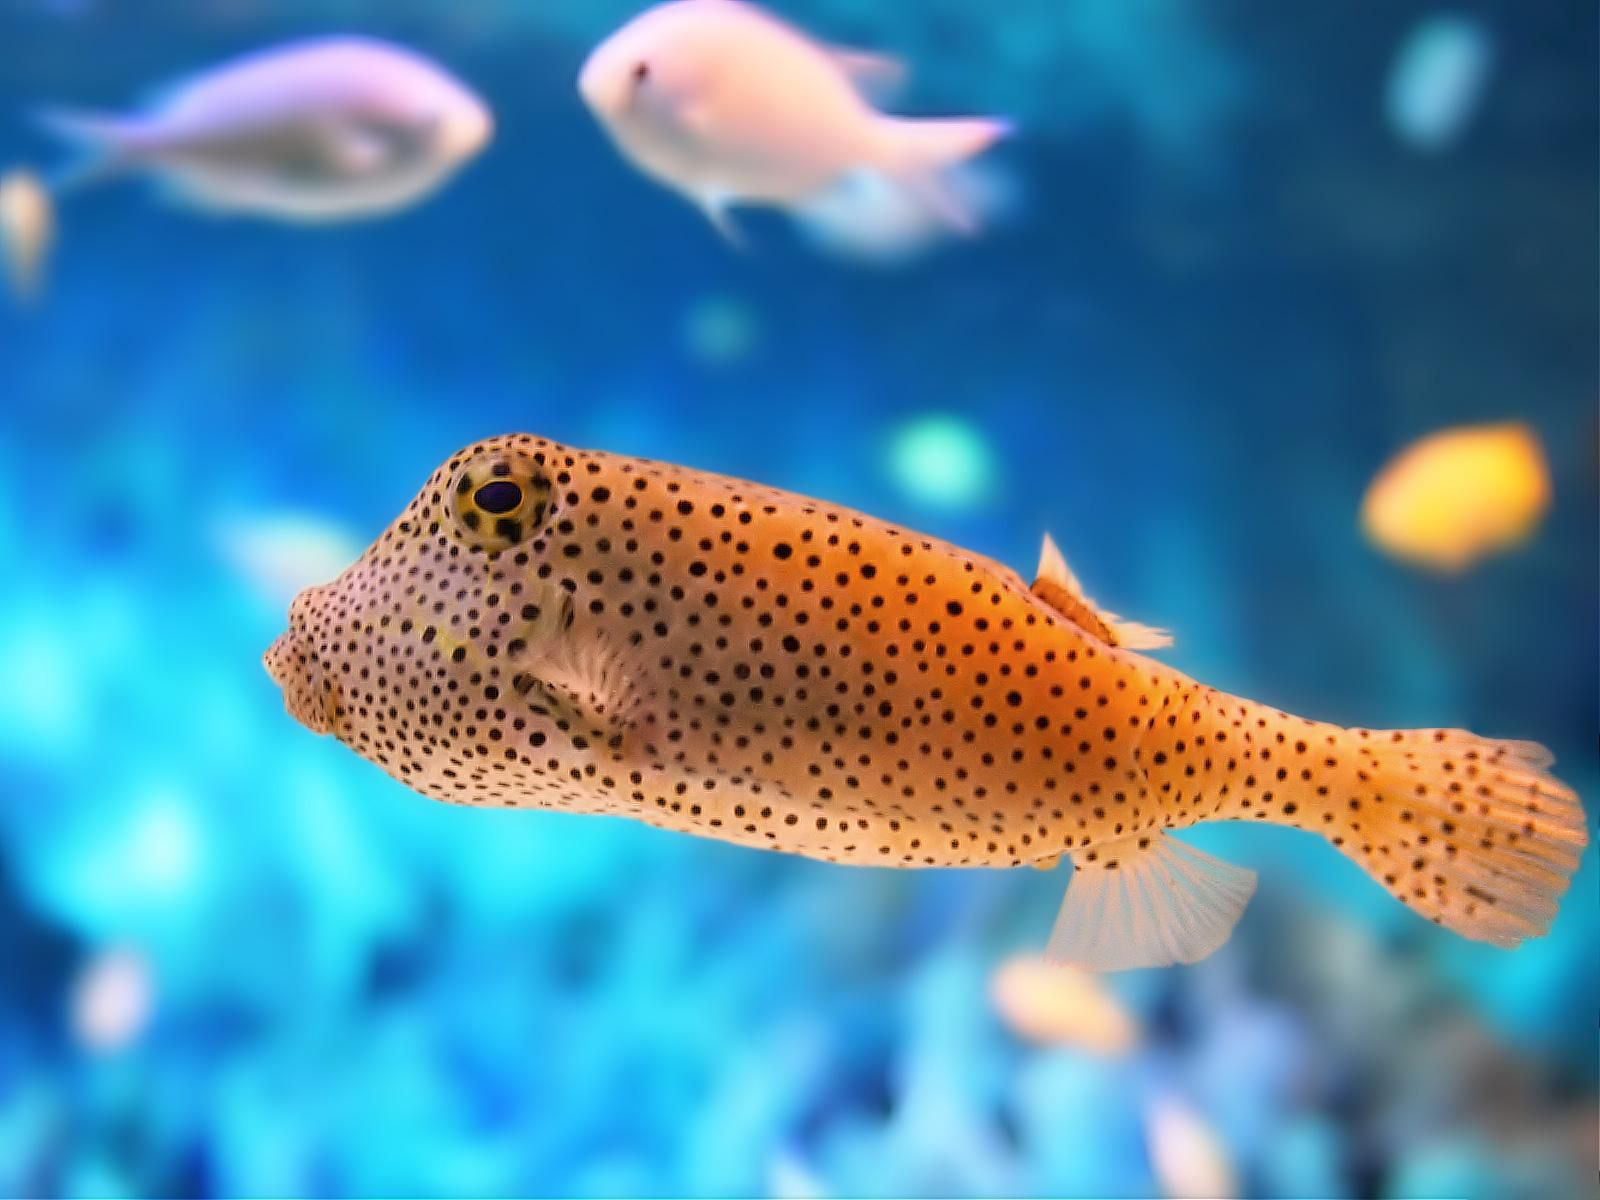 Amazing HD Sea Fish Wallpapers Collection. - Remix Video